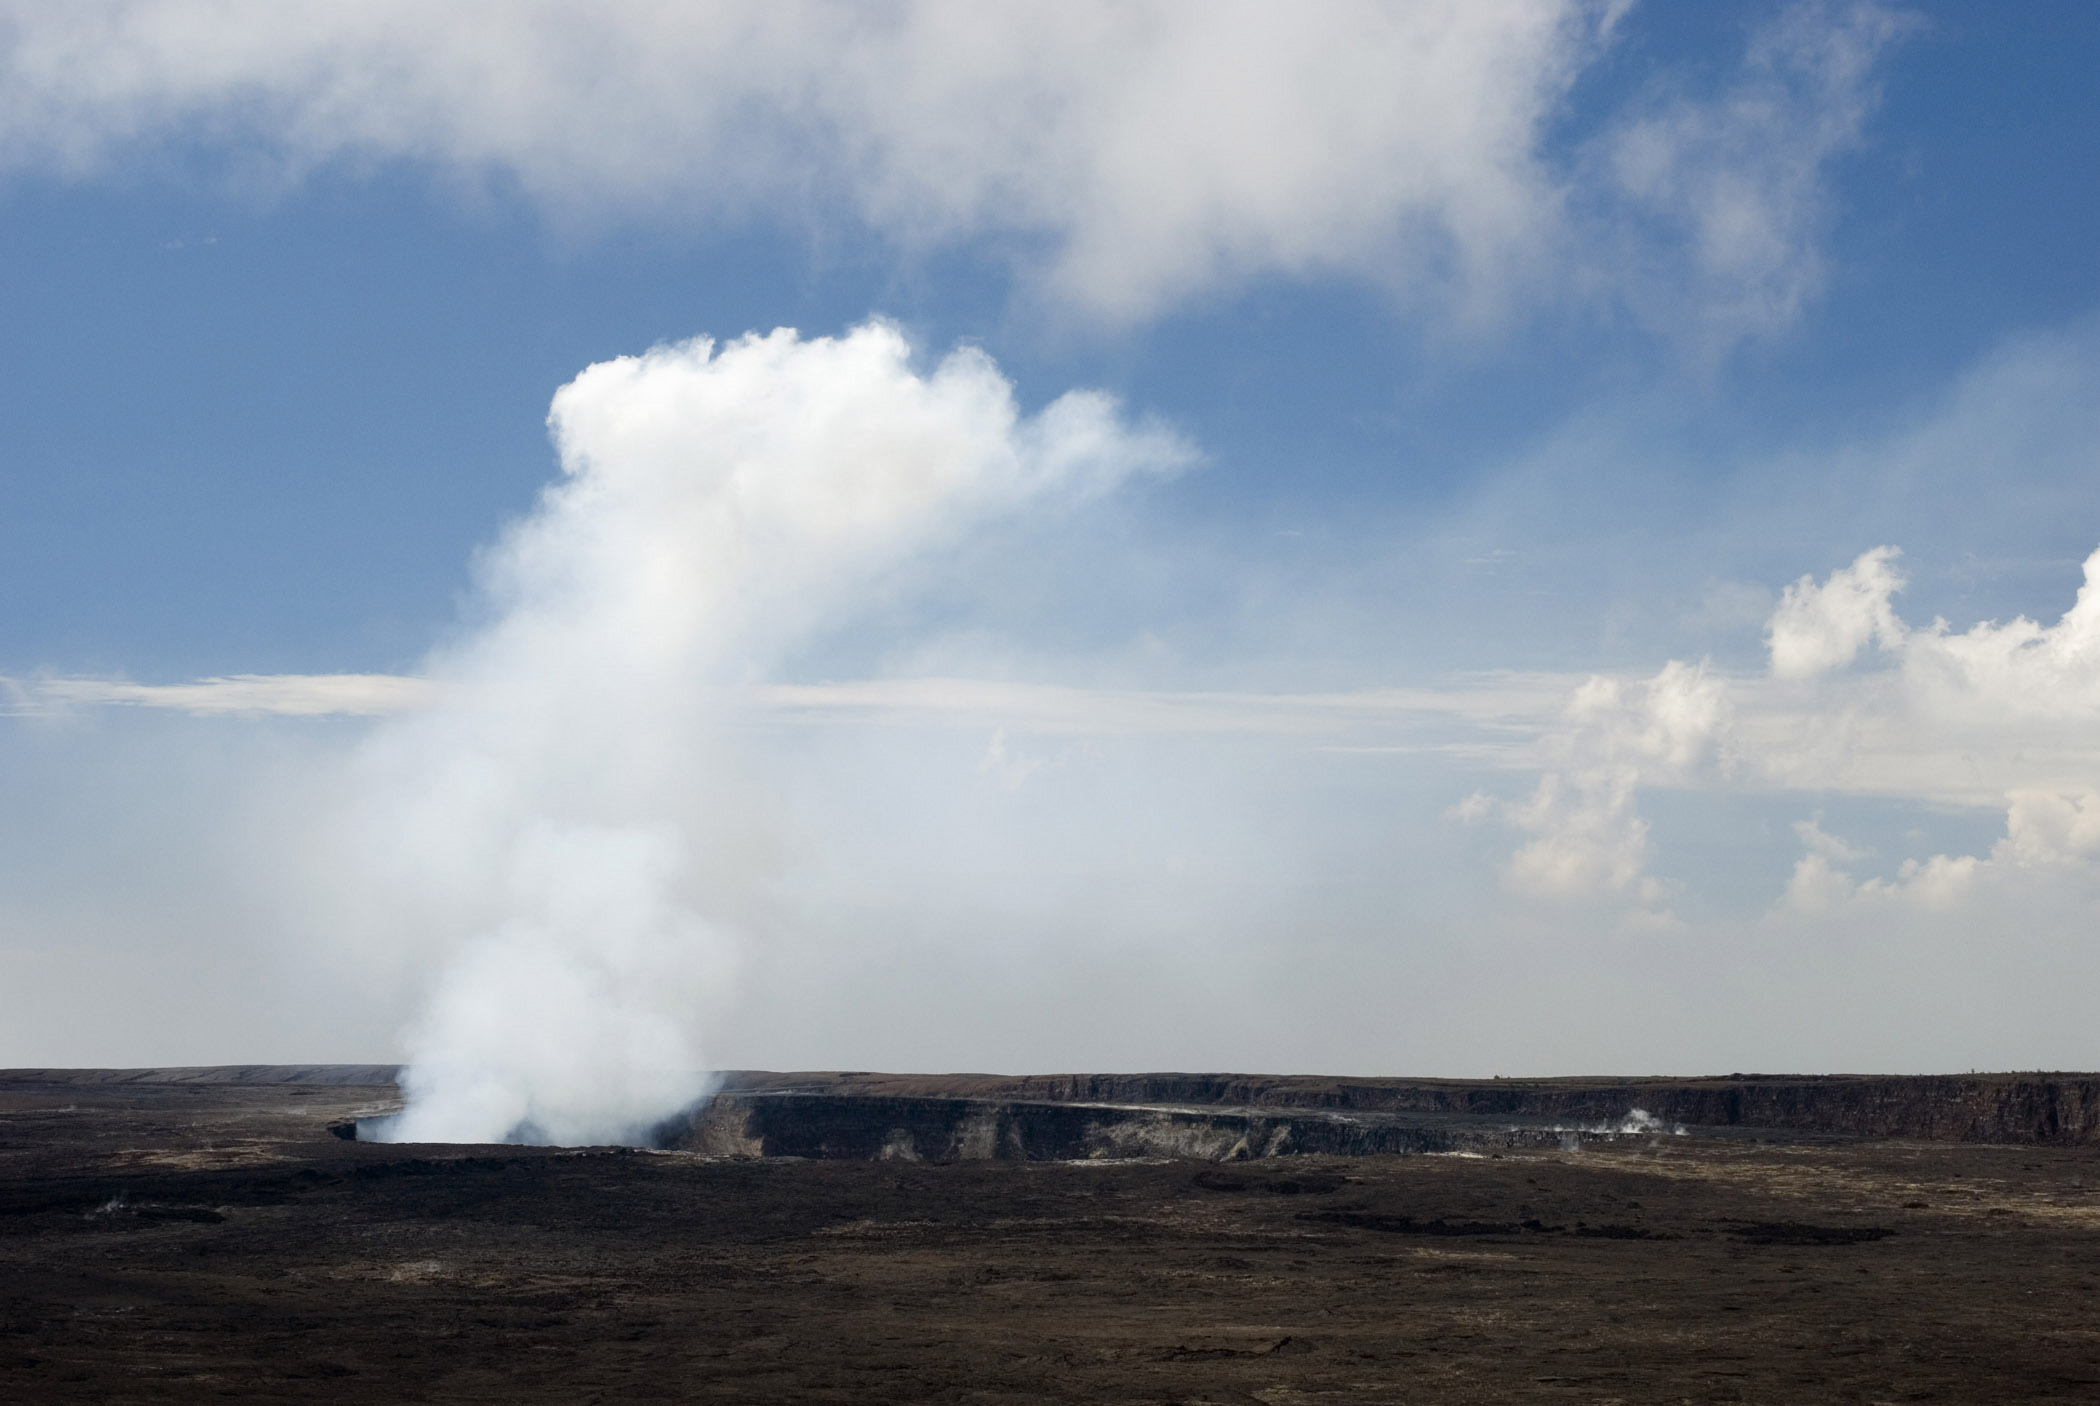 Smoke at Kilauea Caldera in Hawaii. An Active Volcano in Hawaiian Islands. Isolated Blue and White Clouds.